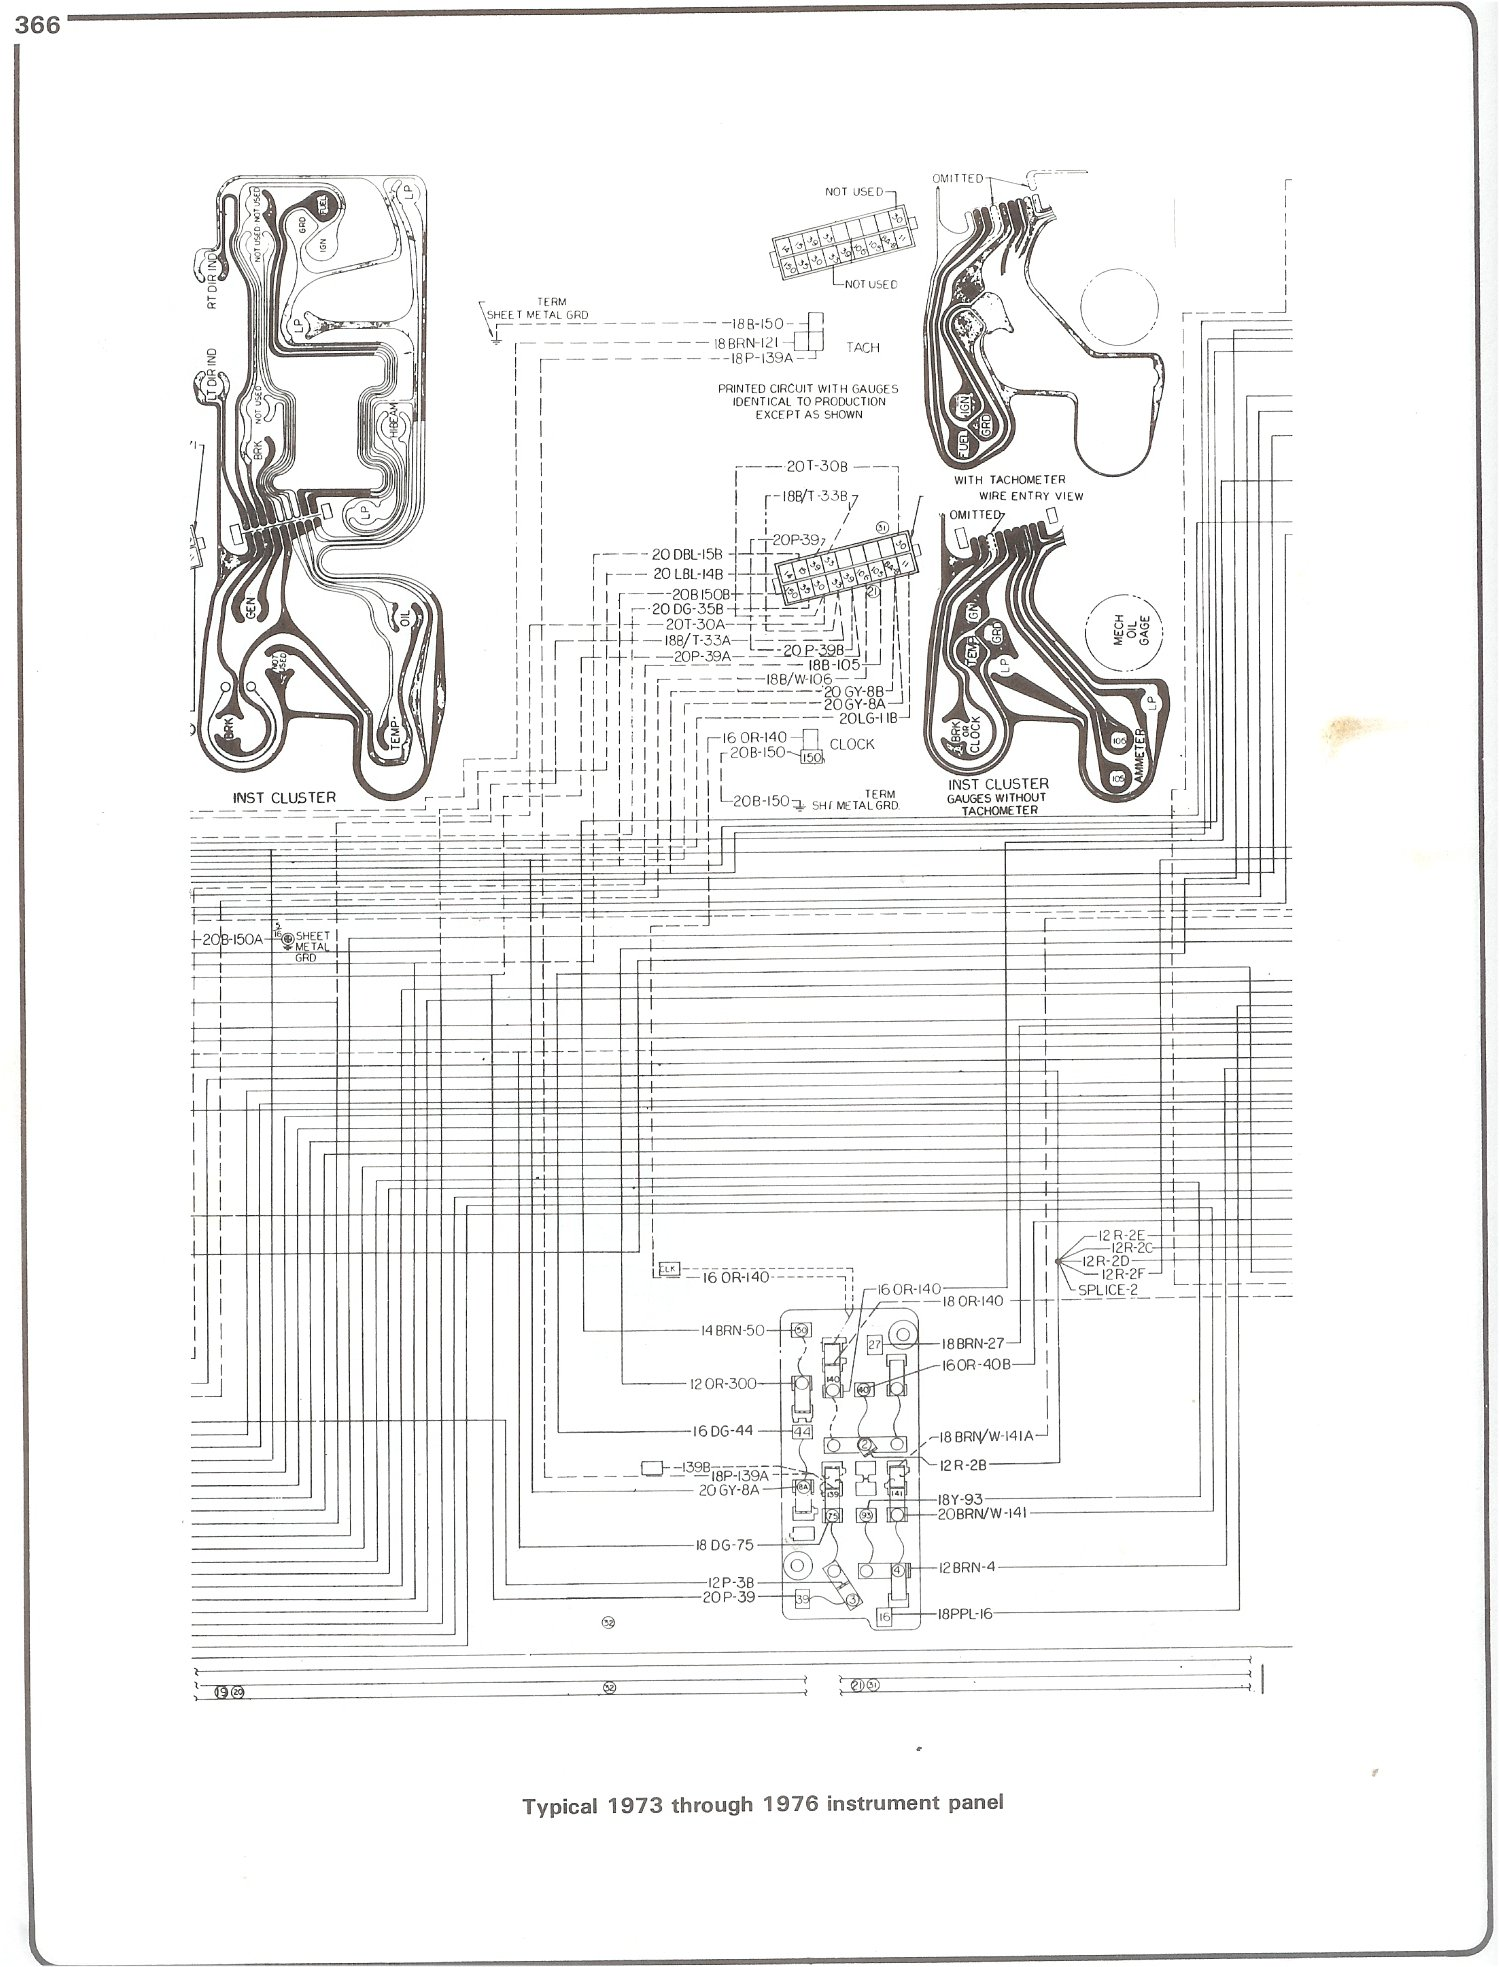 Complete 73 87 Wiring Diagrams 1975 Chevy Alternator Wiring Diagram 76  Chevy Wiring Diagram